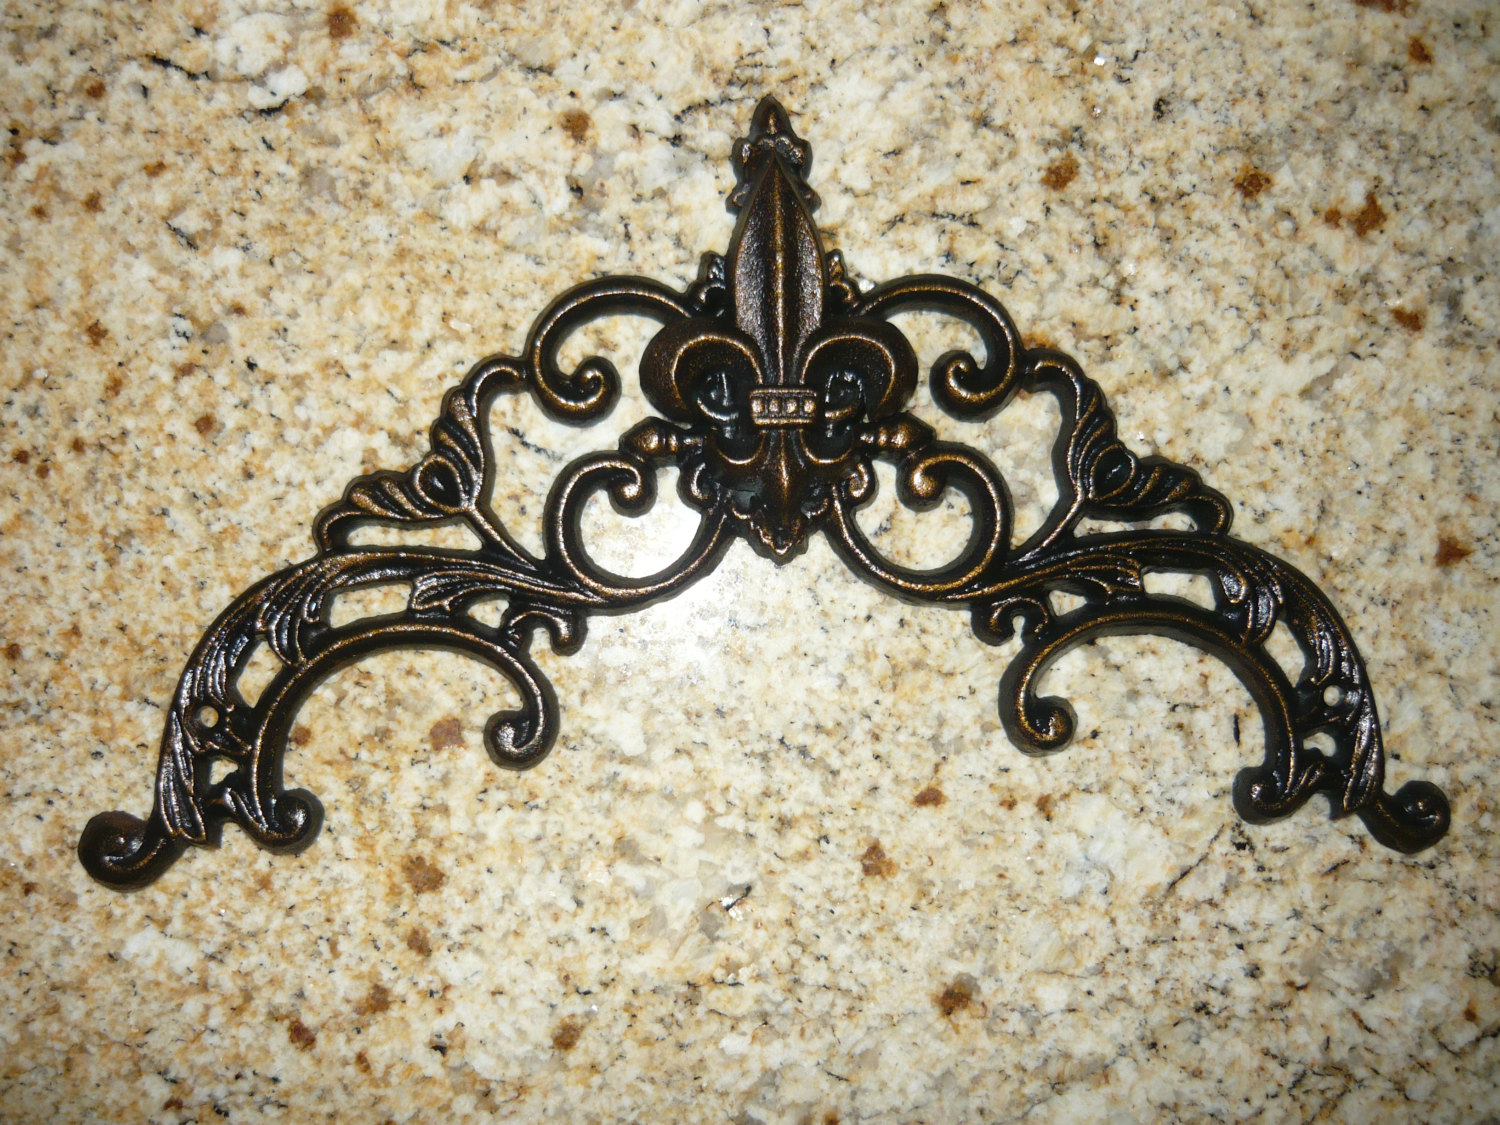 Iron fleur de lis topper valance wall plaque old world french country med - Plaque de decoration ...